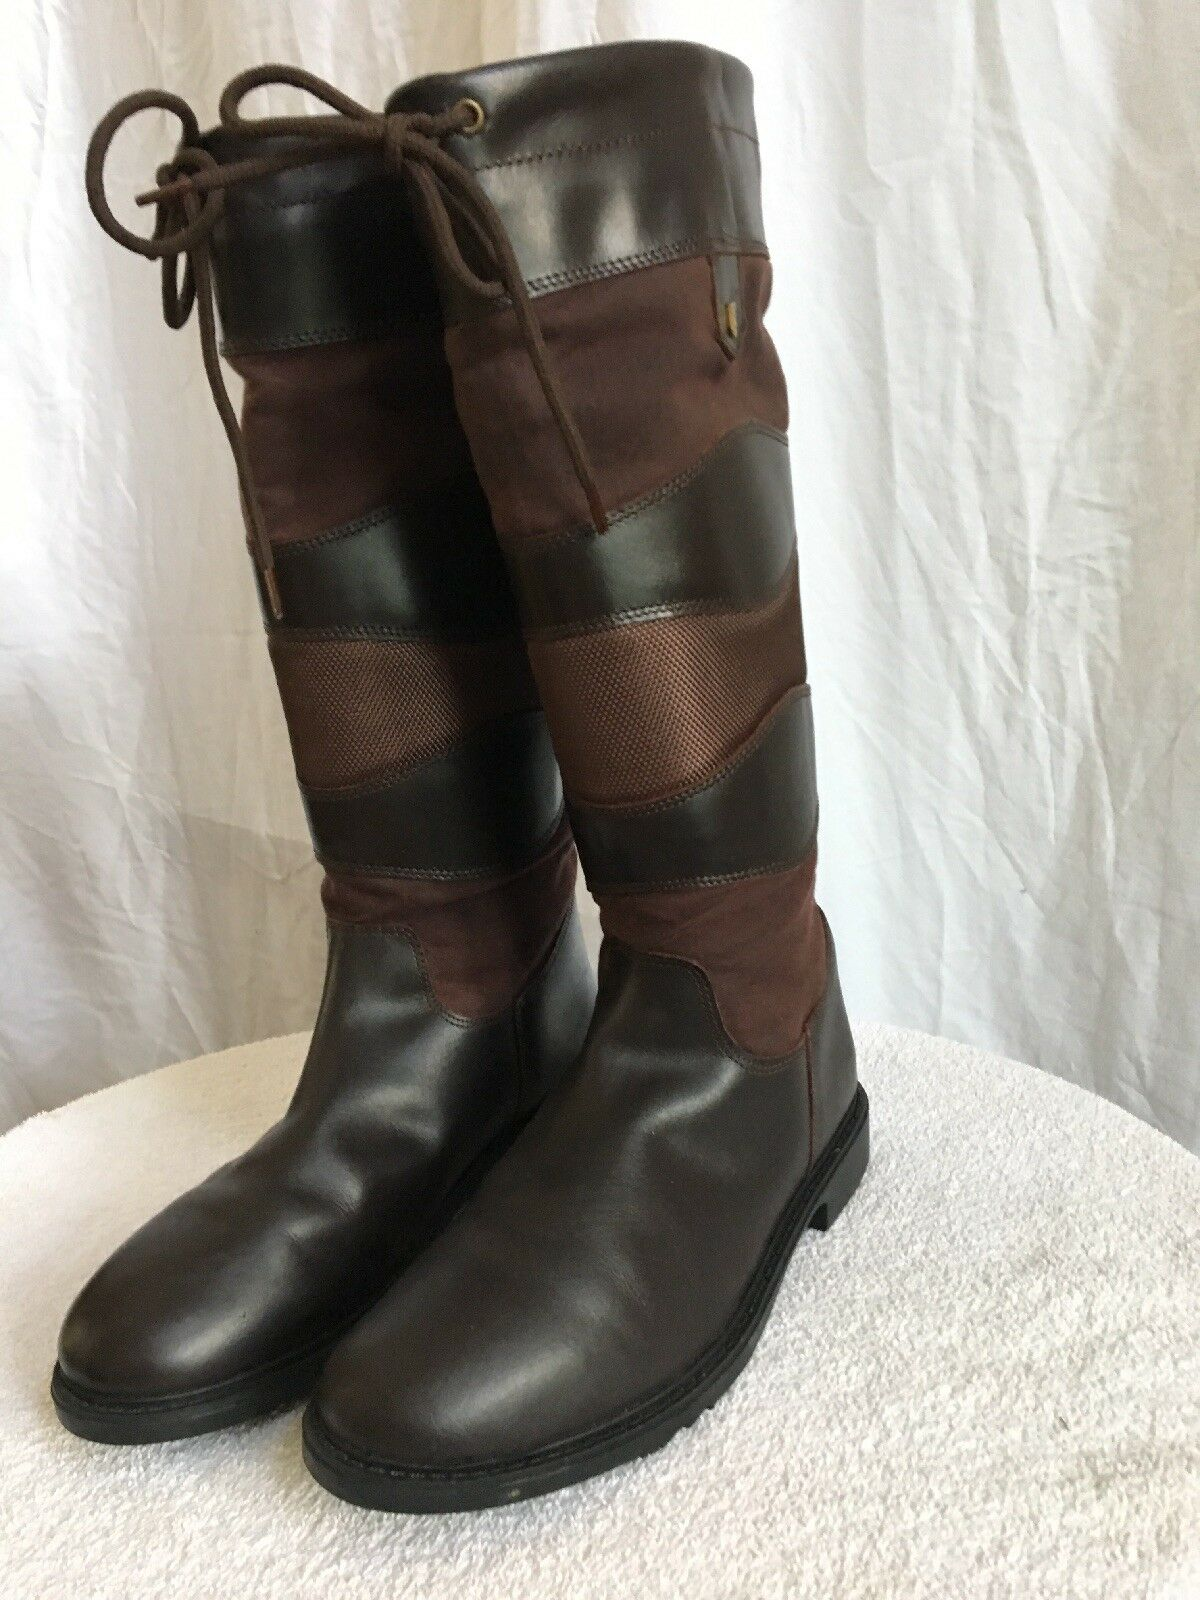 Equestrain Tall botas  by Treadstone the Milano Talla 8 New in Box Chocolate